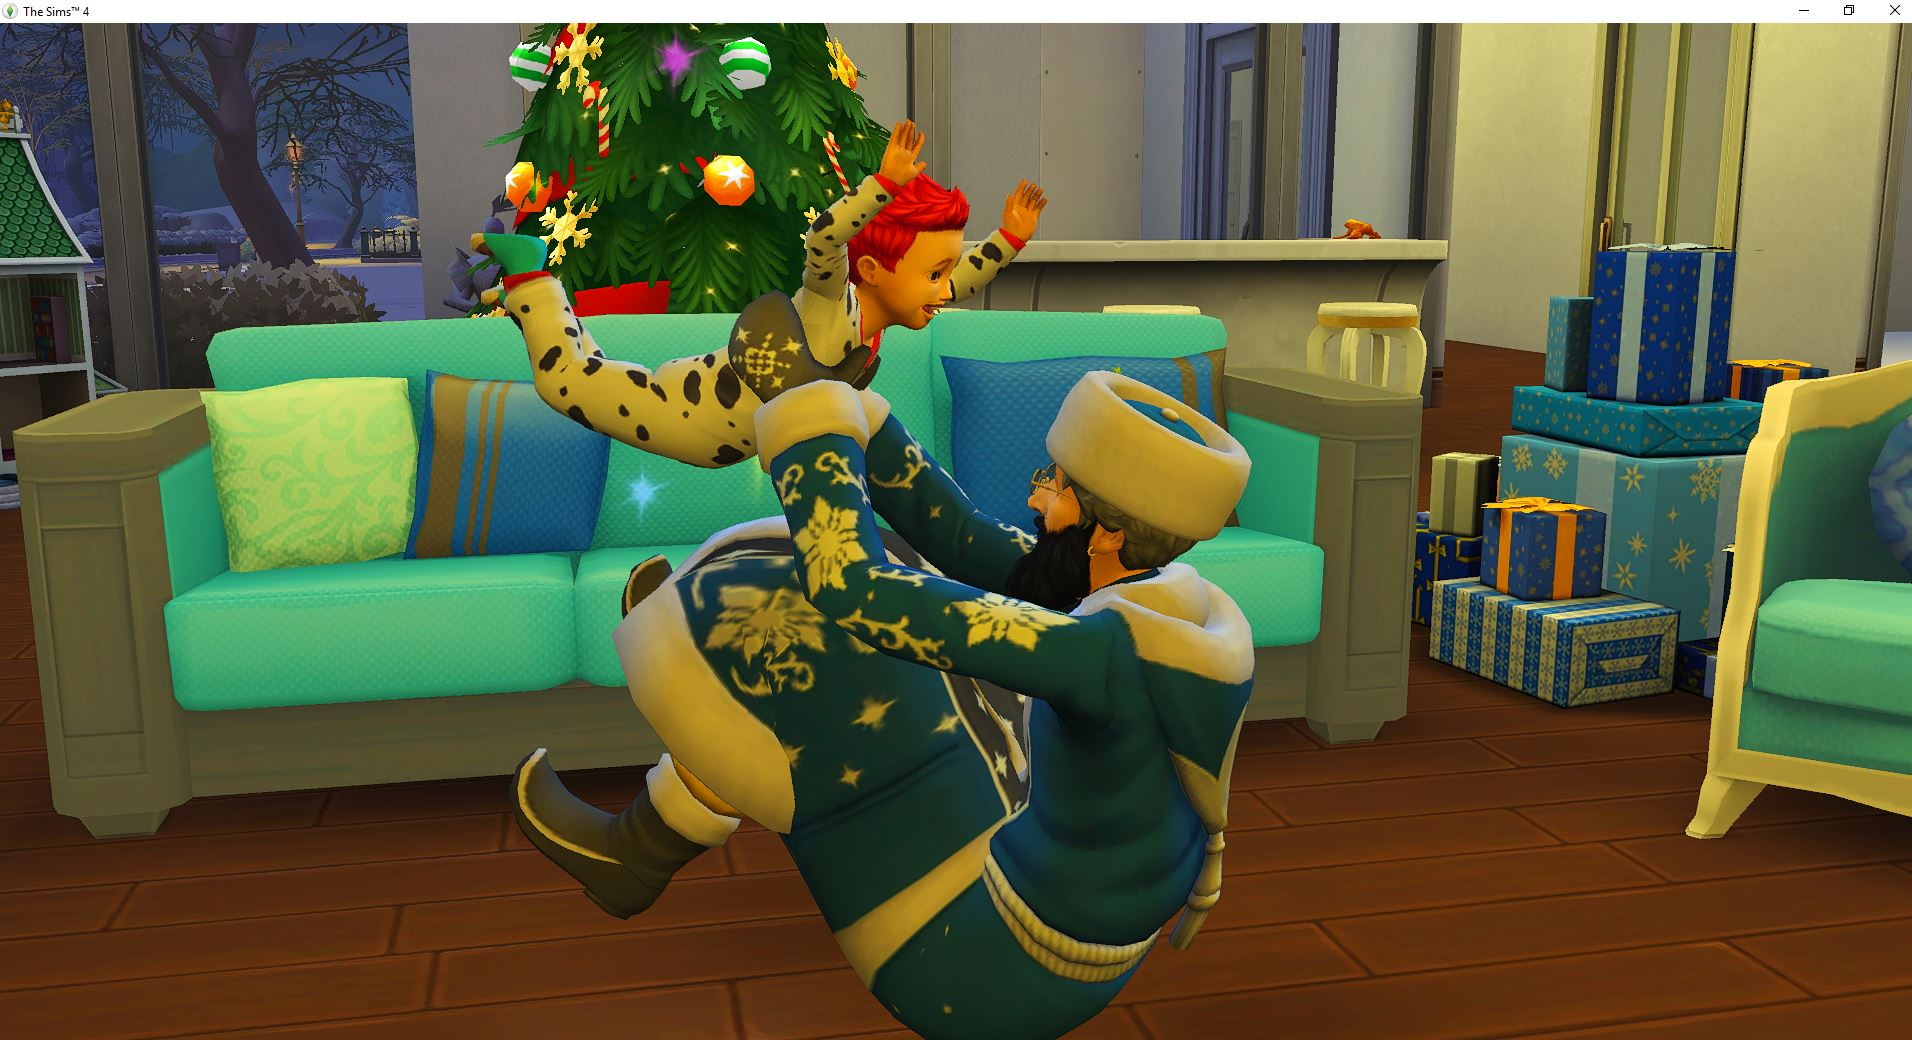 2018-12-31 17_37_09-The Sims™ 4